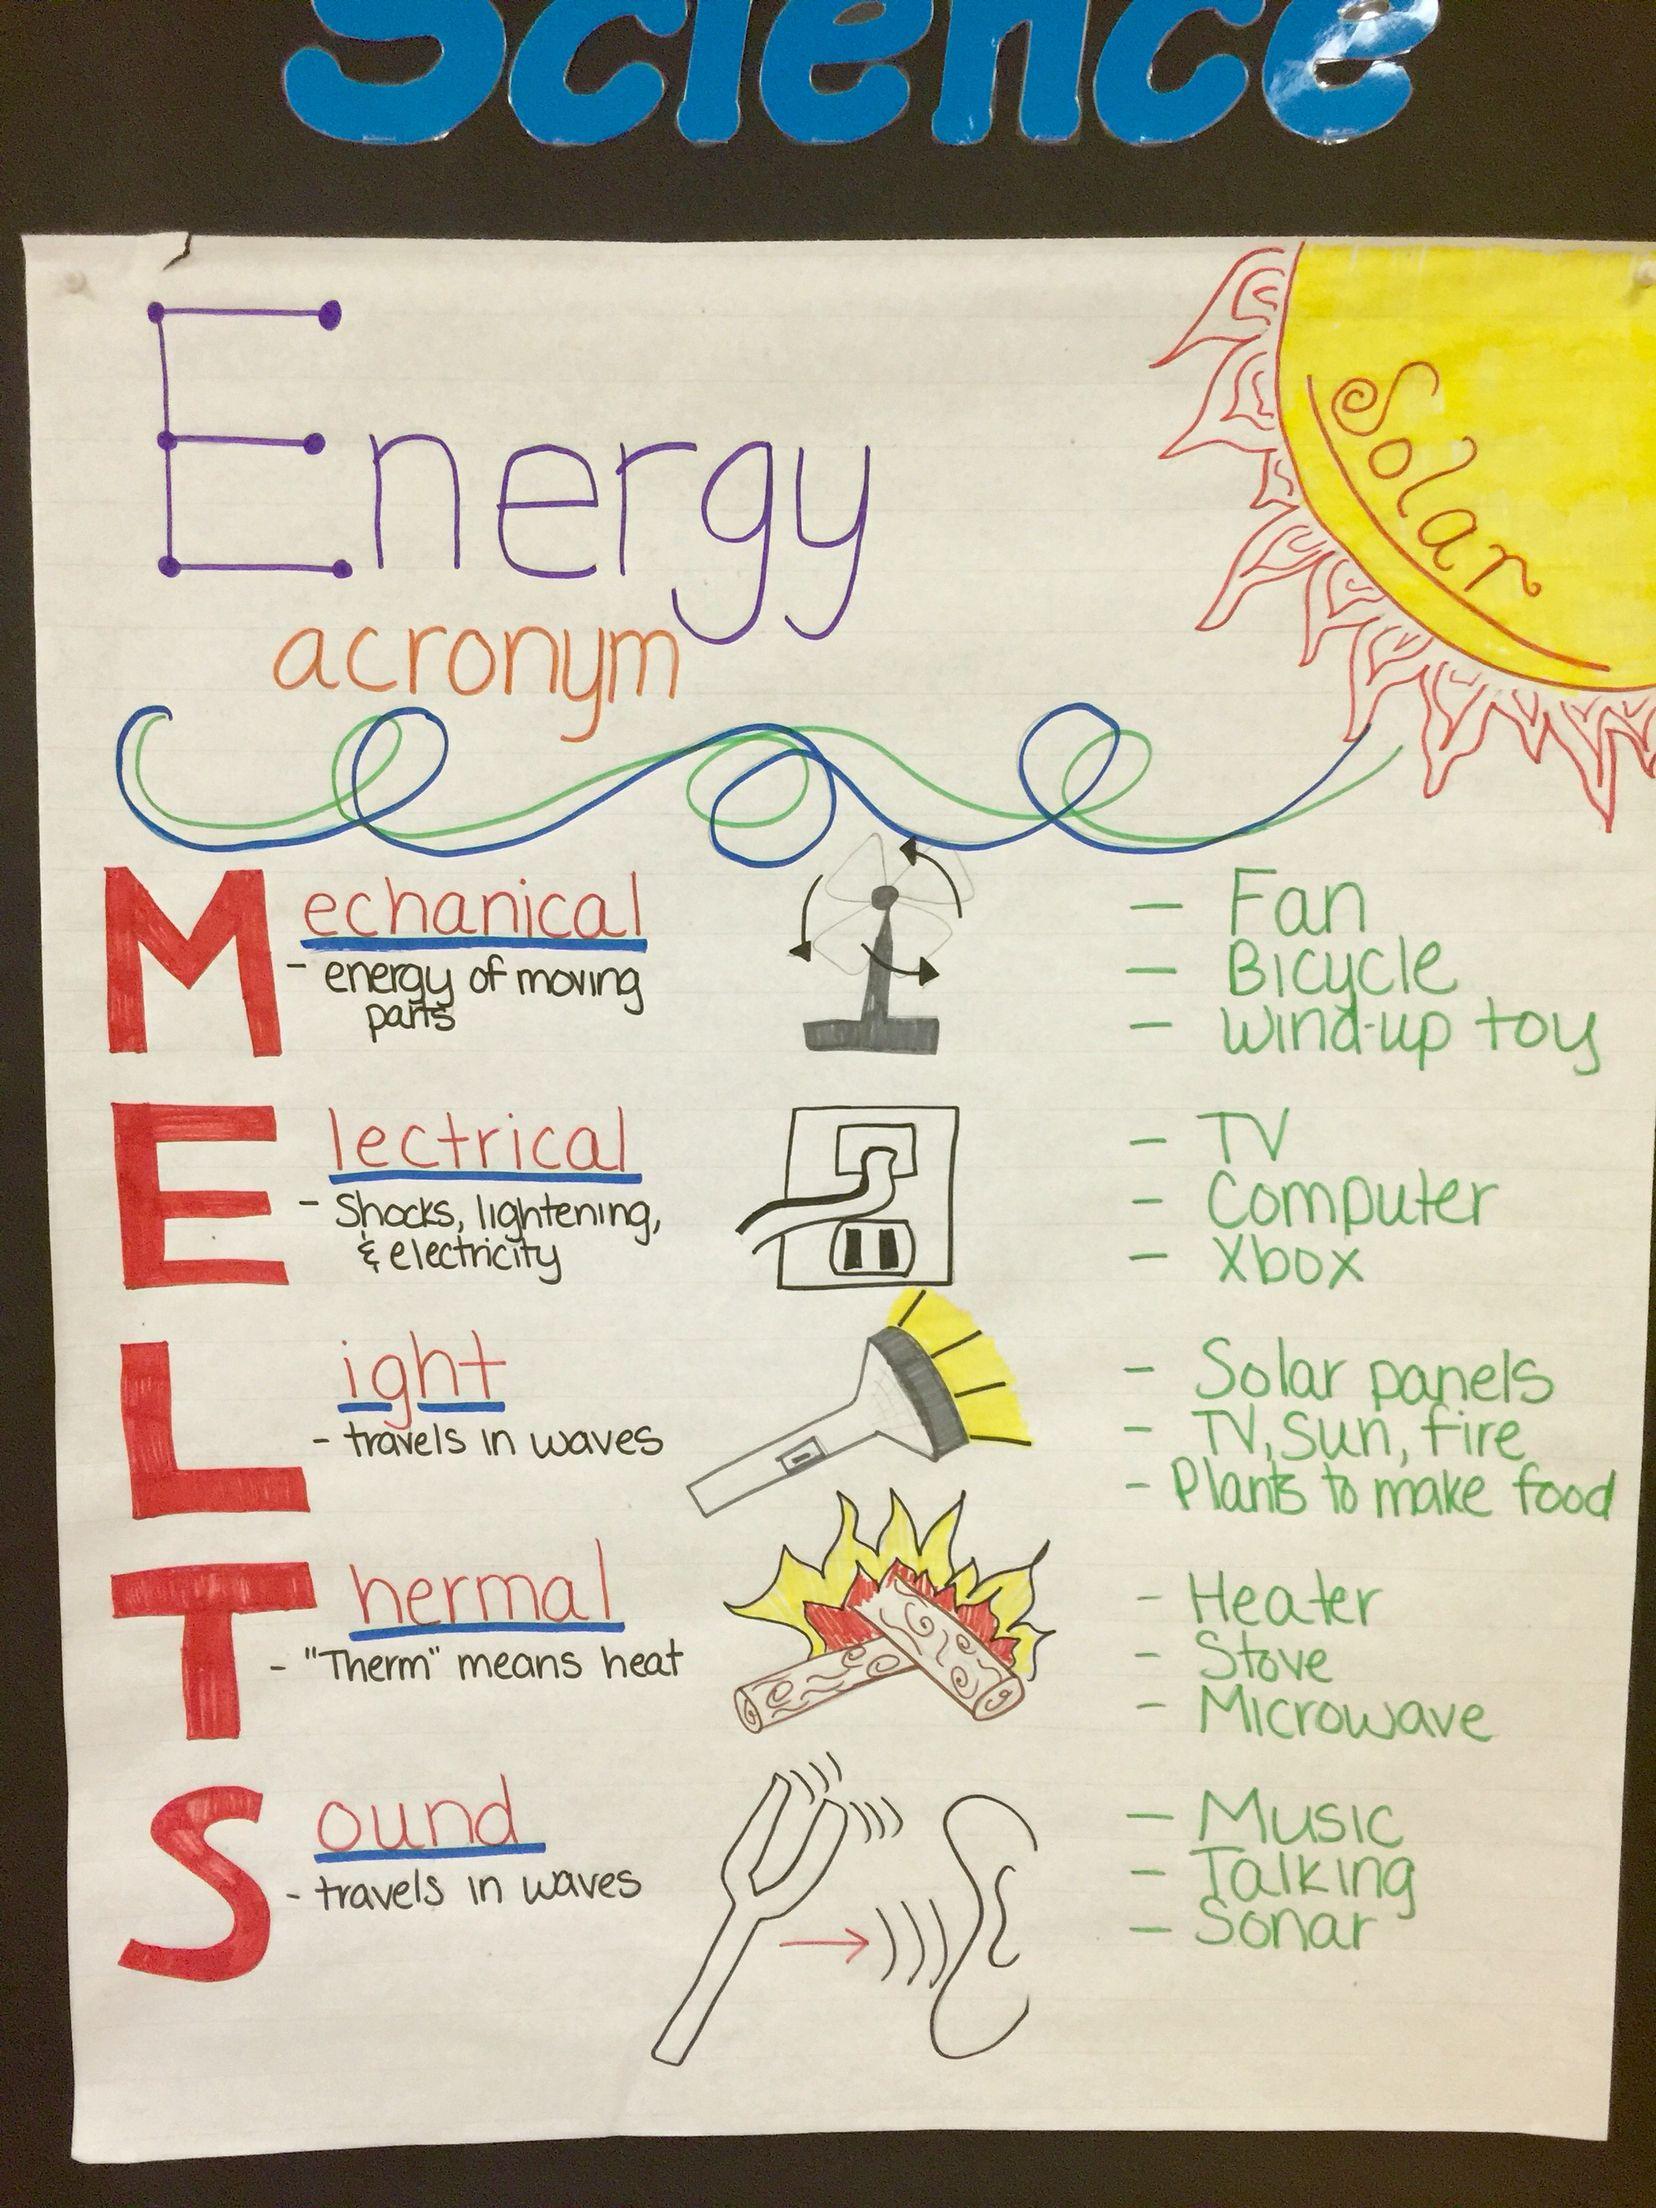 41285a29fb7091788033ece92cc0d7e8  Th Grade Science Lessons On Heat on 4th grade weather, 4th grade library, 7th grade ela lessons, 4th grade math, 4th grade history, 7th grade health lessons, library science lessons, 6th grade geography lessons, 7th grade history lessons, 4th grade writing workbooks, 10th grade science lessons, 4th grade phonics, grade 9 science lessons, 4th grade writing strategies, 4th grade language worksheets, 4th grade skills, kindergarten science lessons, 4th grade home, 4th grade education, 4th grade teaching ideas,